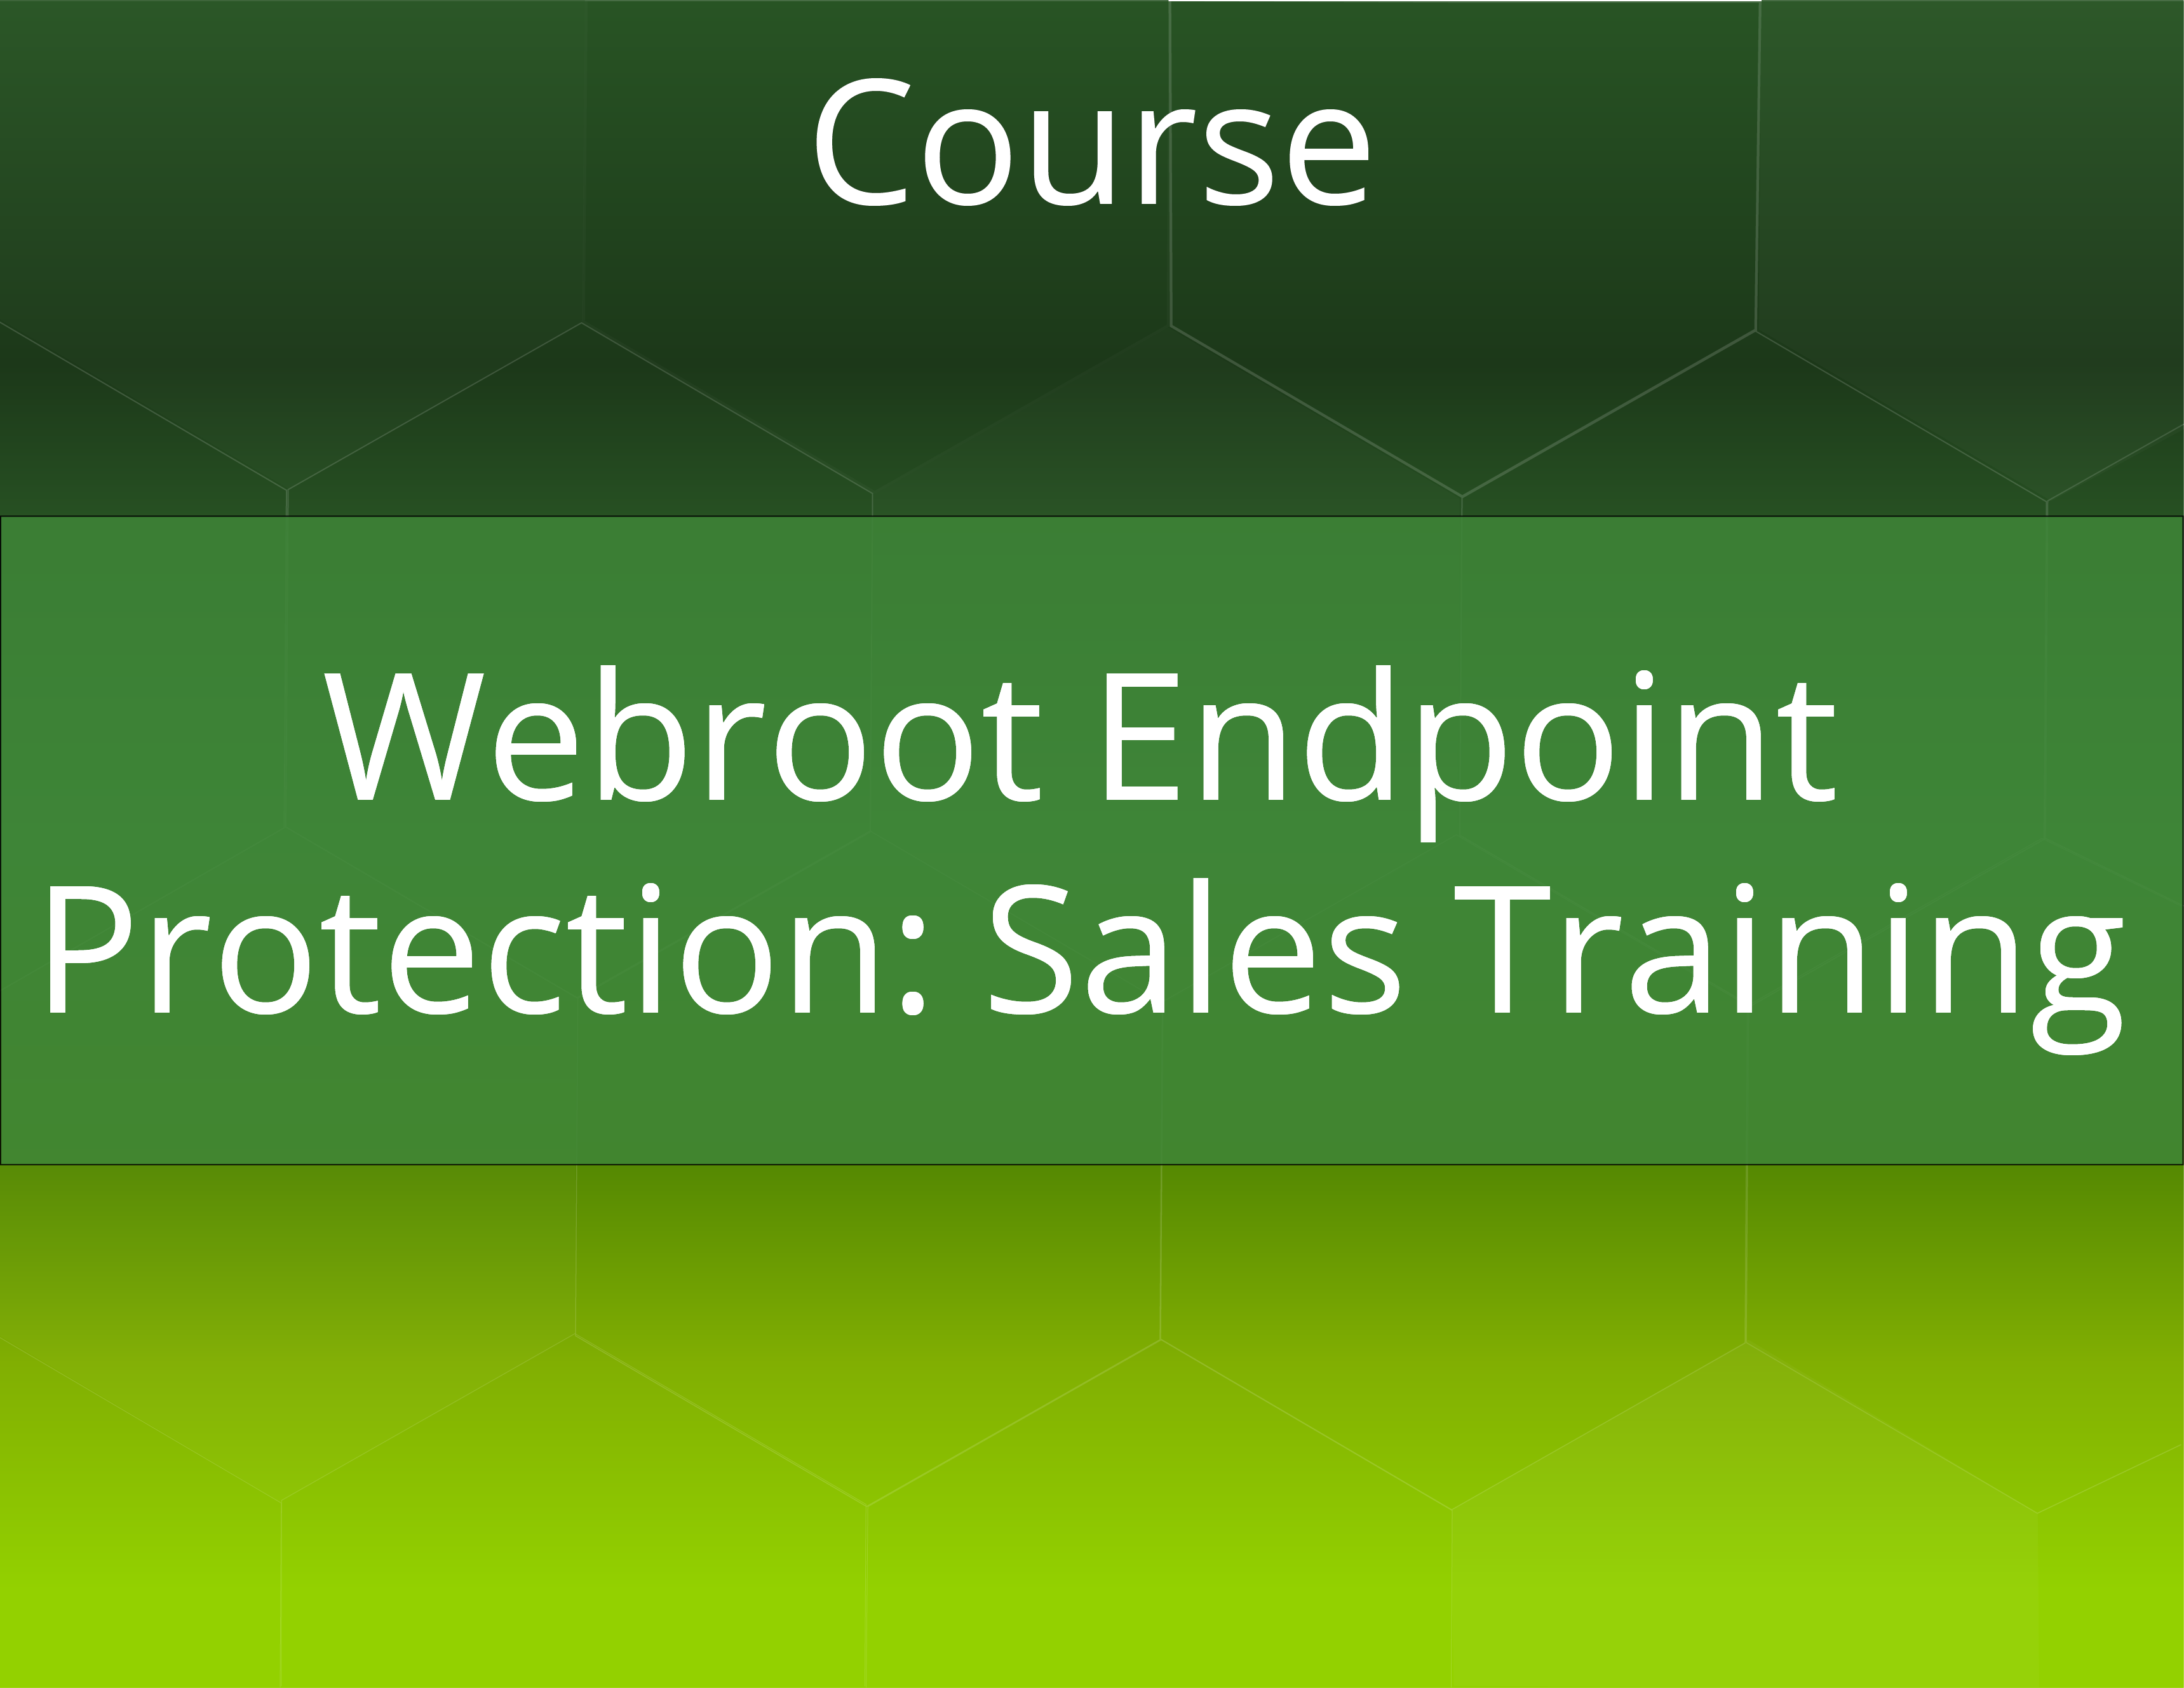 Webroot Endpoint Protection Sales Training